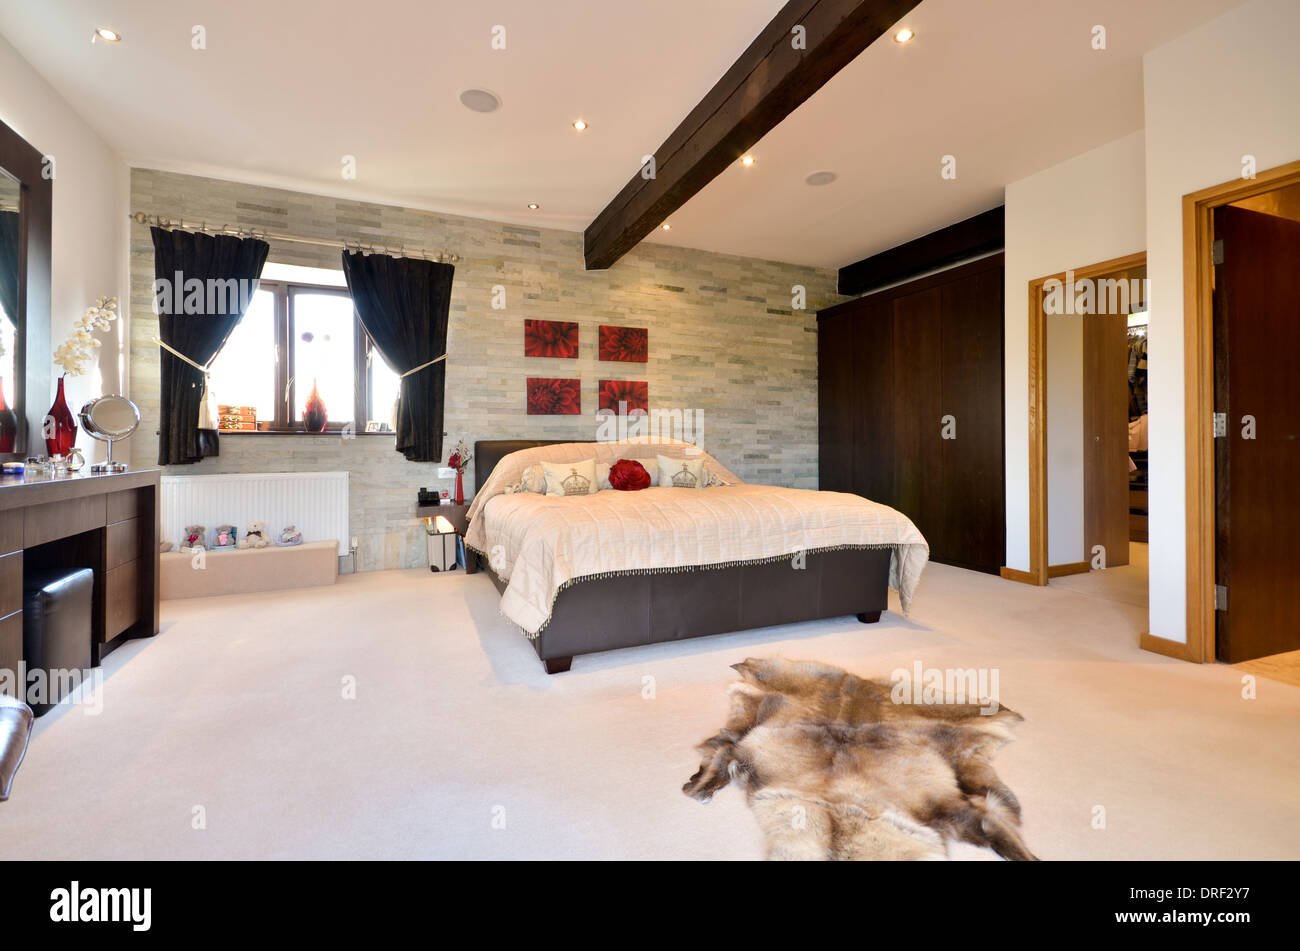 Stylish master bedroom with ensuite and dressing room stock photo royalty free image 66099803 Master bedroom ensuite and dressing room